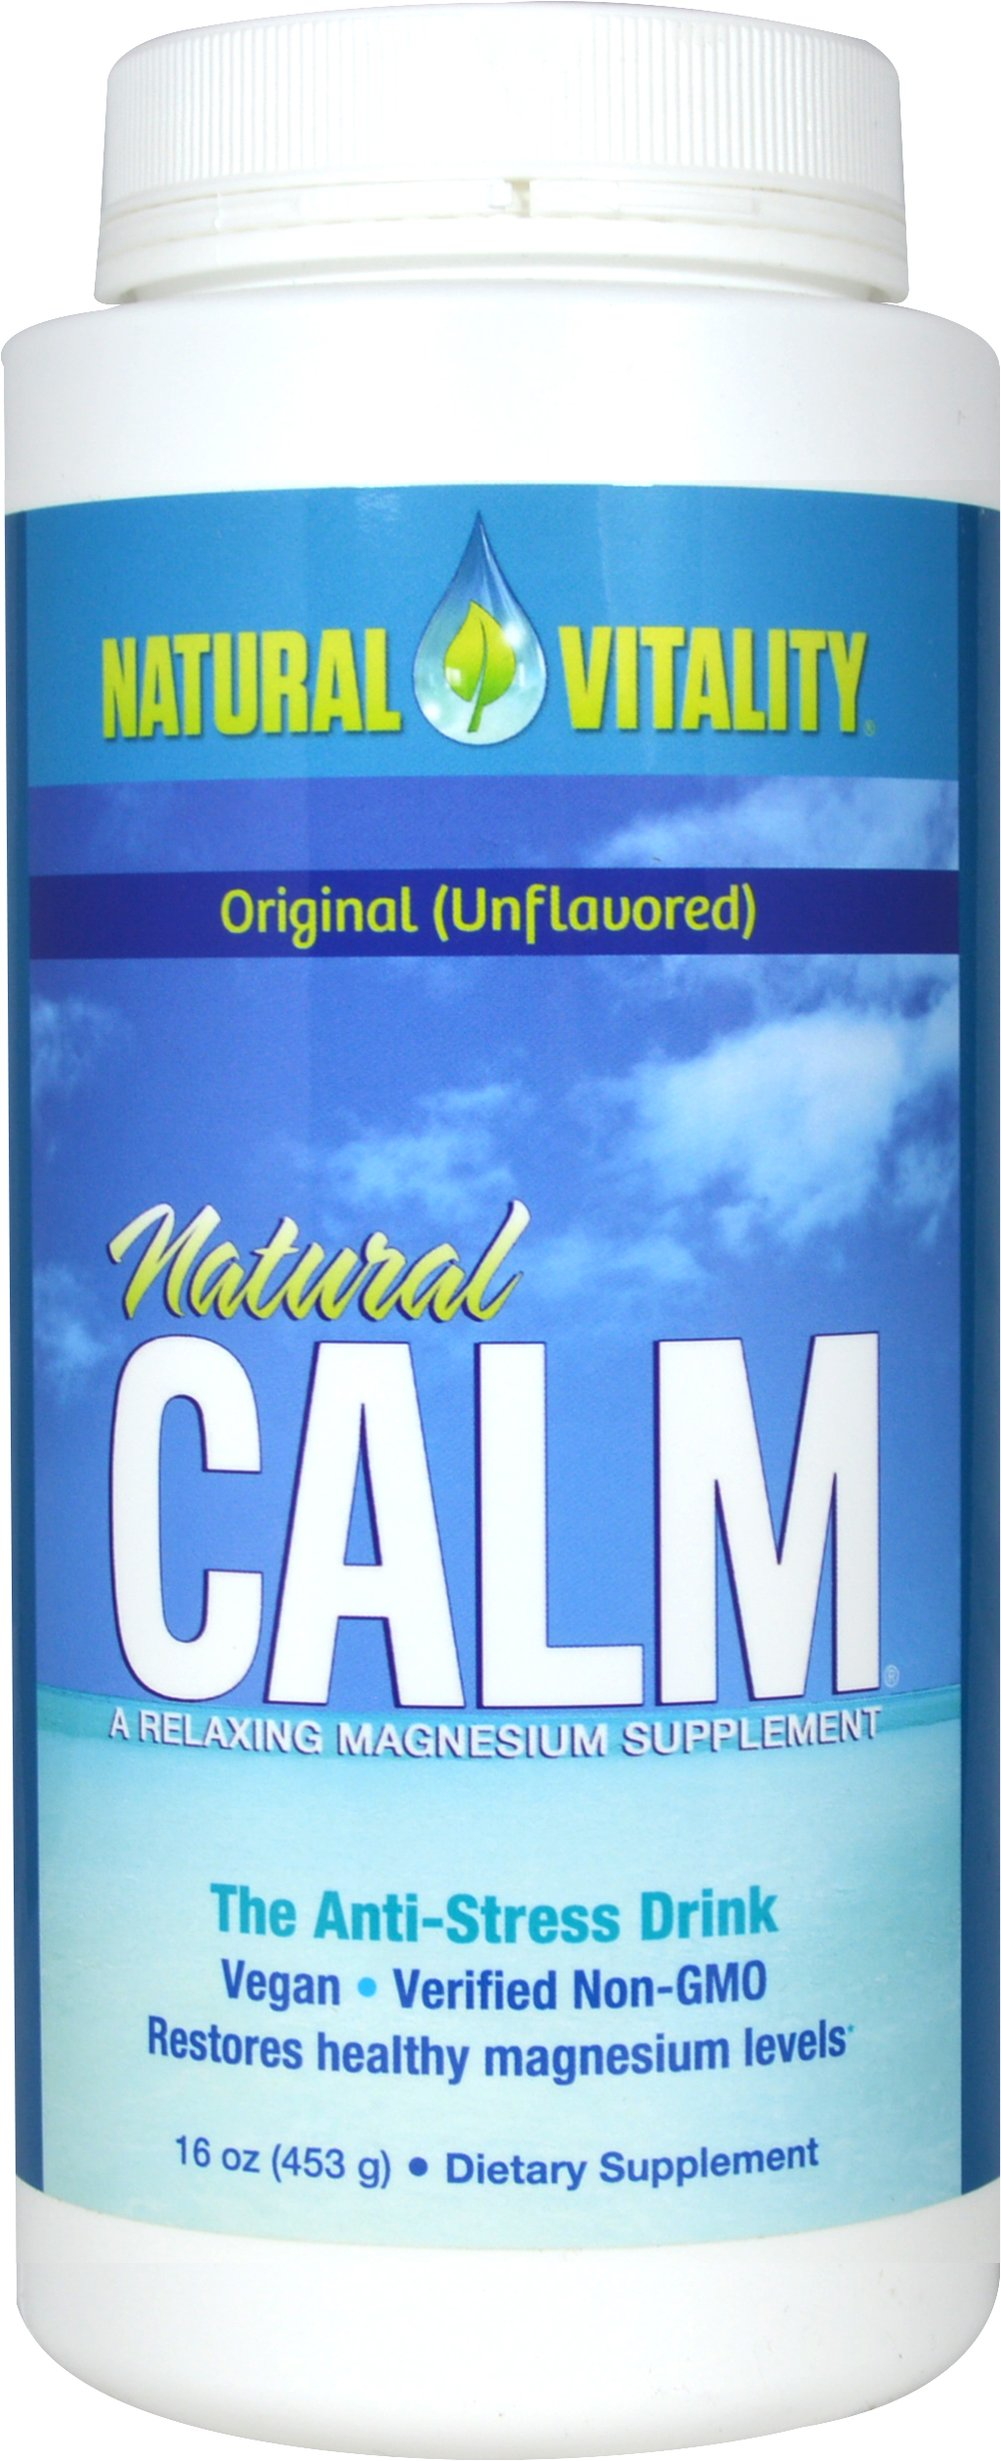 Natural Calm Original